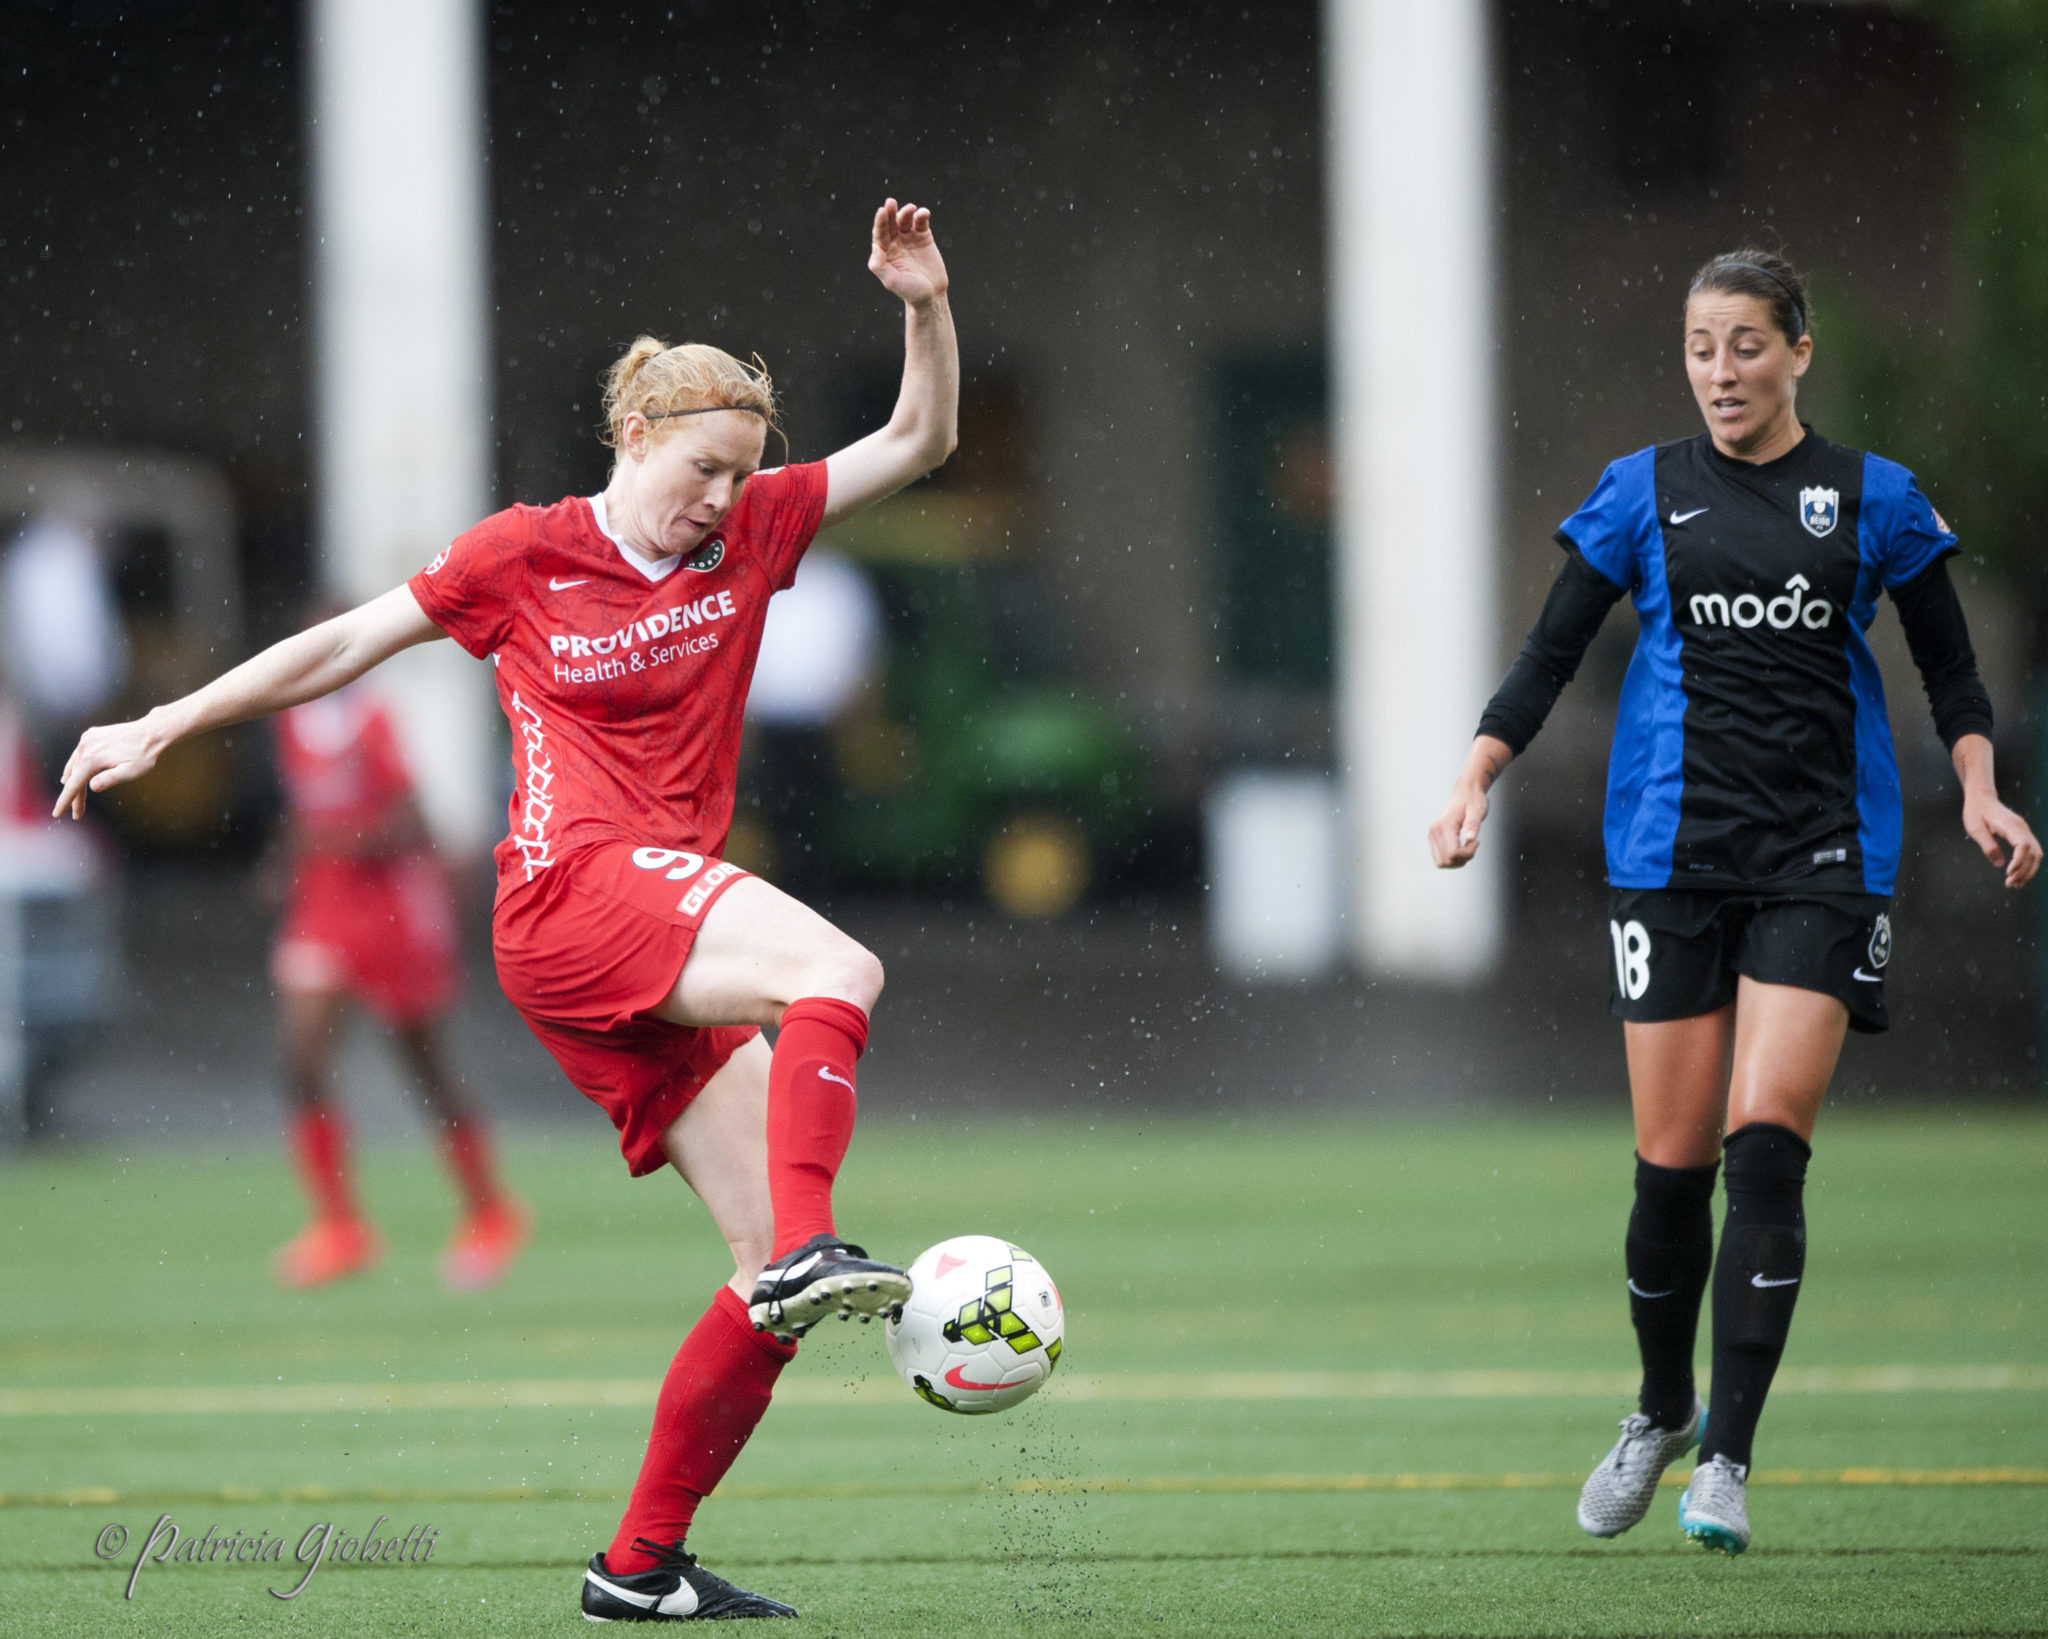 Portland Thorns FC waived Australian international Clare Polkinghorne. (Photo Copyright Patricia Giobetti for The Equalizer)